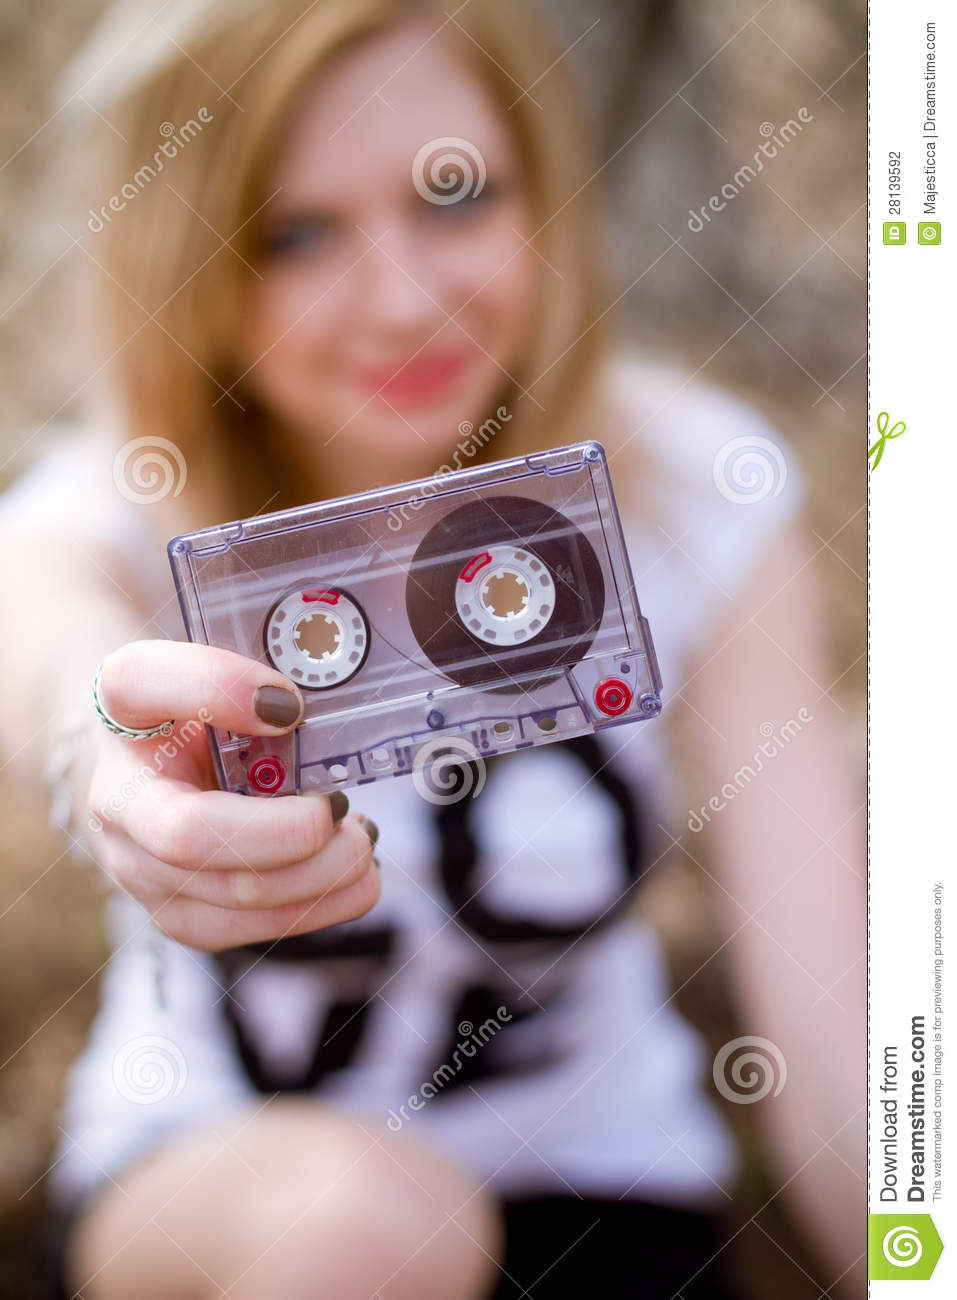 Girl with a cassette in her hand